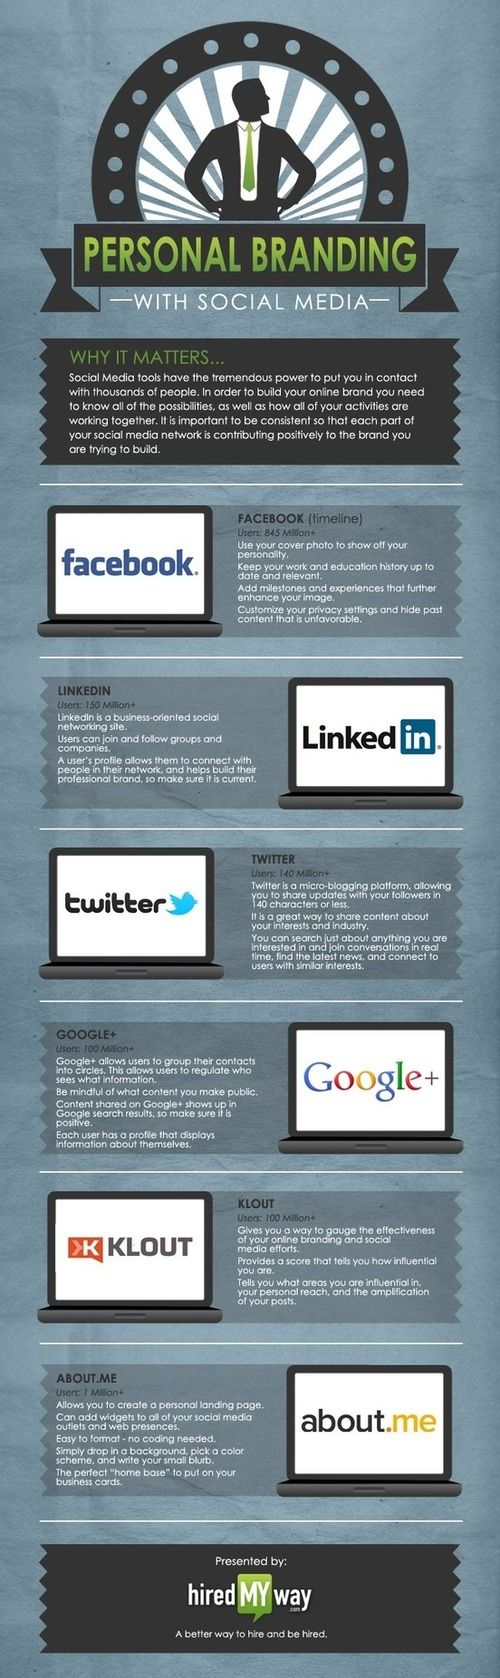 Personal Branding With Social Media [Infographic] | VIRTUAL OPTIONS COACHING & TRAINING